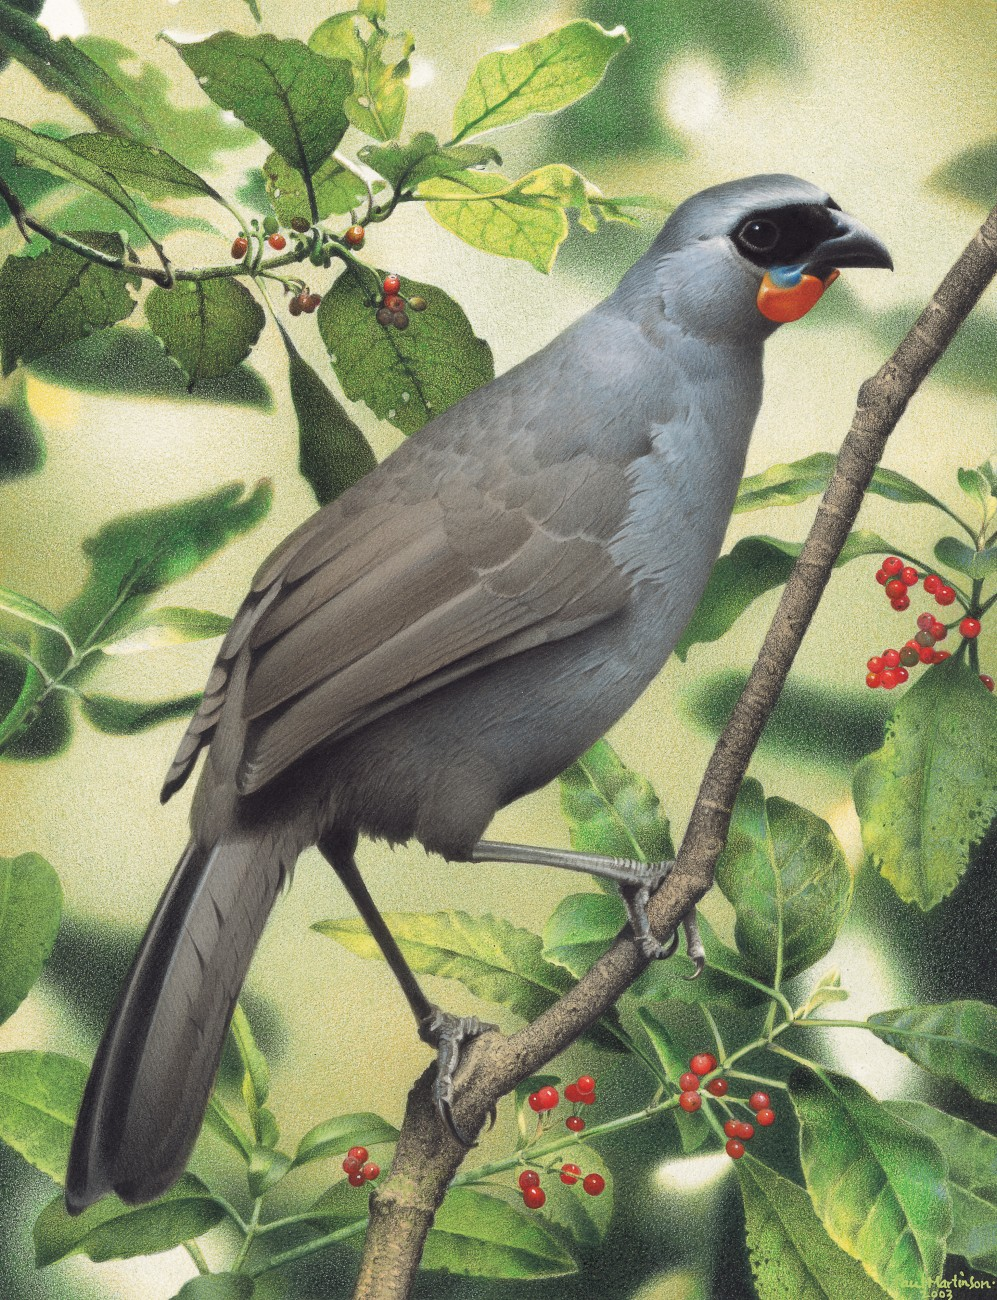 Although South Island kokako have been declared extinct, some believe the birds survive in parts of the West Coast and on Stewart Island. Calls have been heard but no birds have been photographed or seen for some 50 years. In the North Island, birds are confined to the Ureweras, several inland Bay of Plenty and King County forests, the Hunuas, Puketi, some forests around the Hokianga, Little Barrier, Lady Alice and Tiritiri Islands.